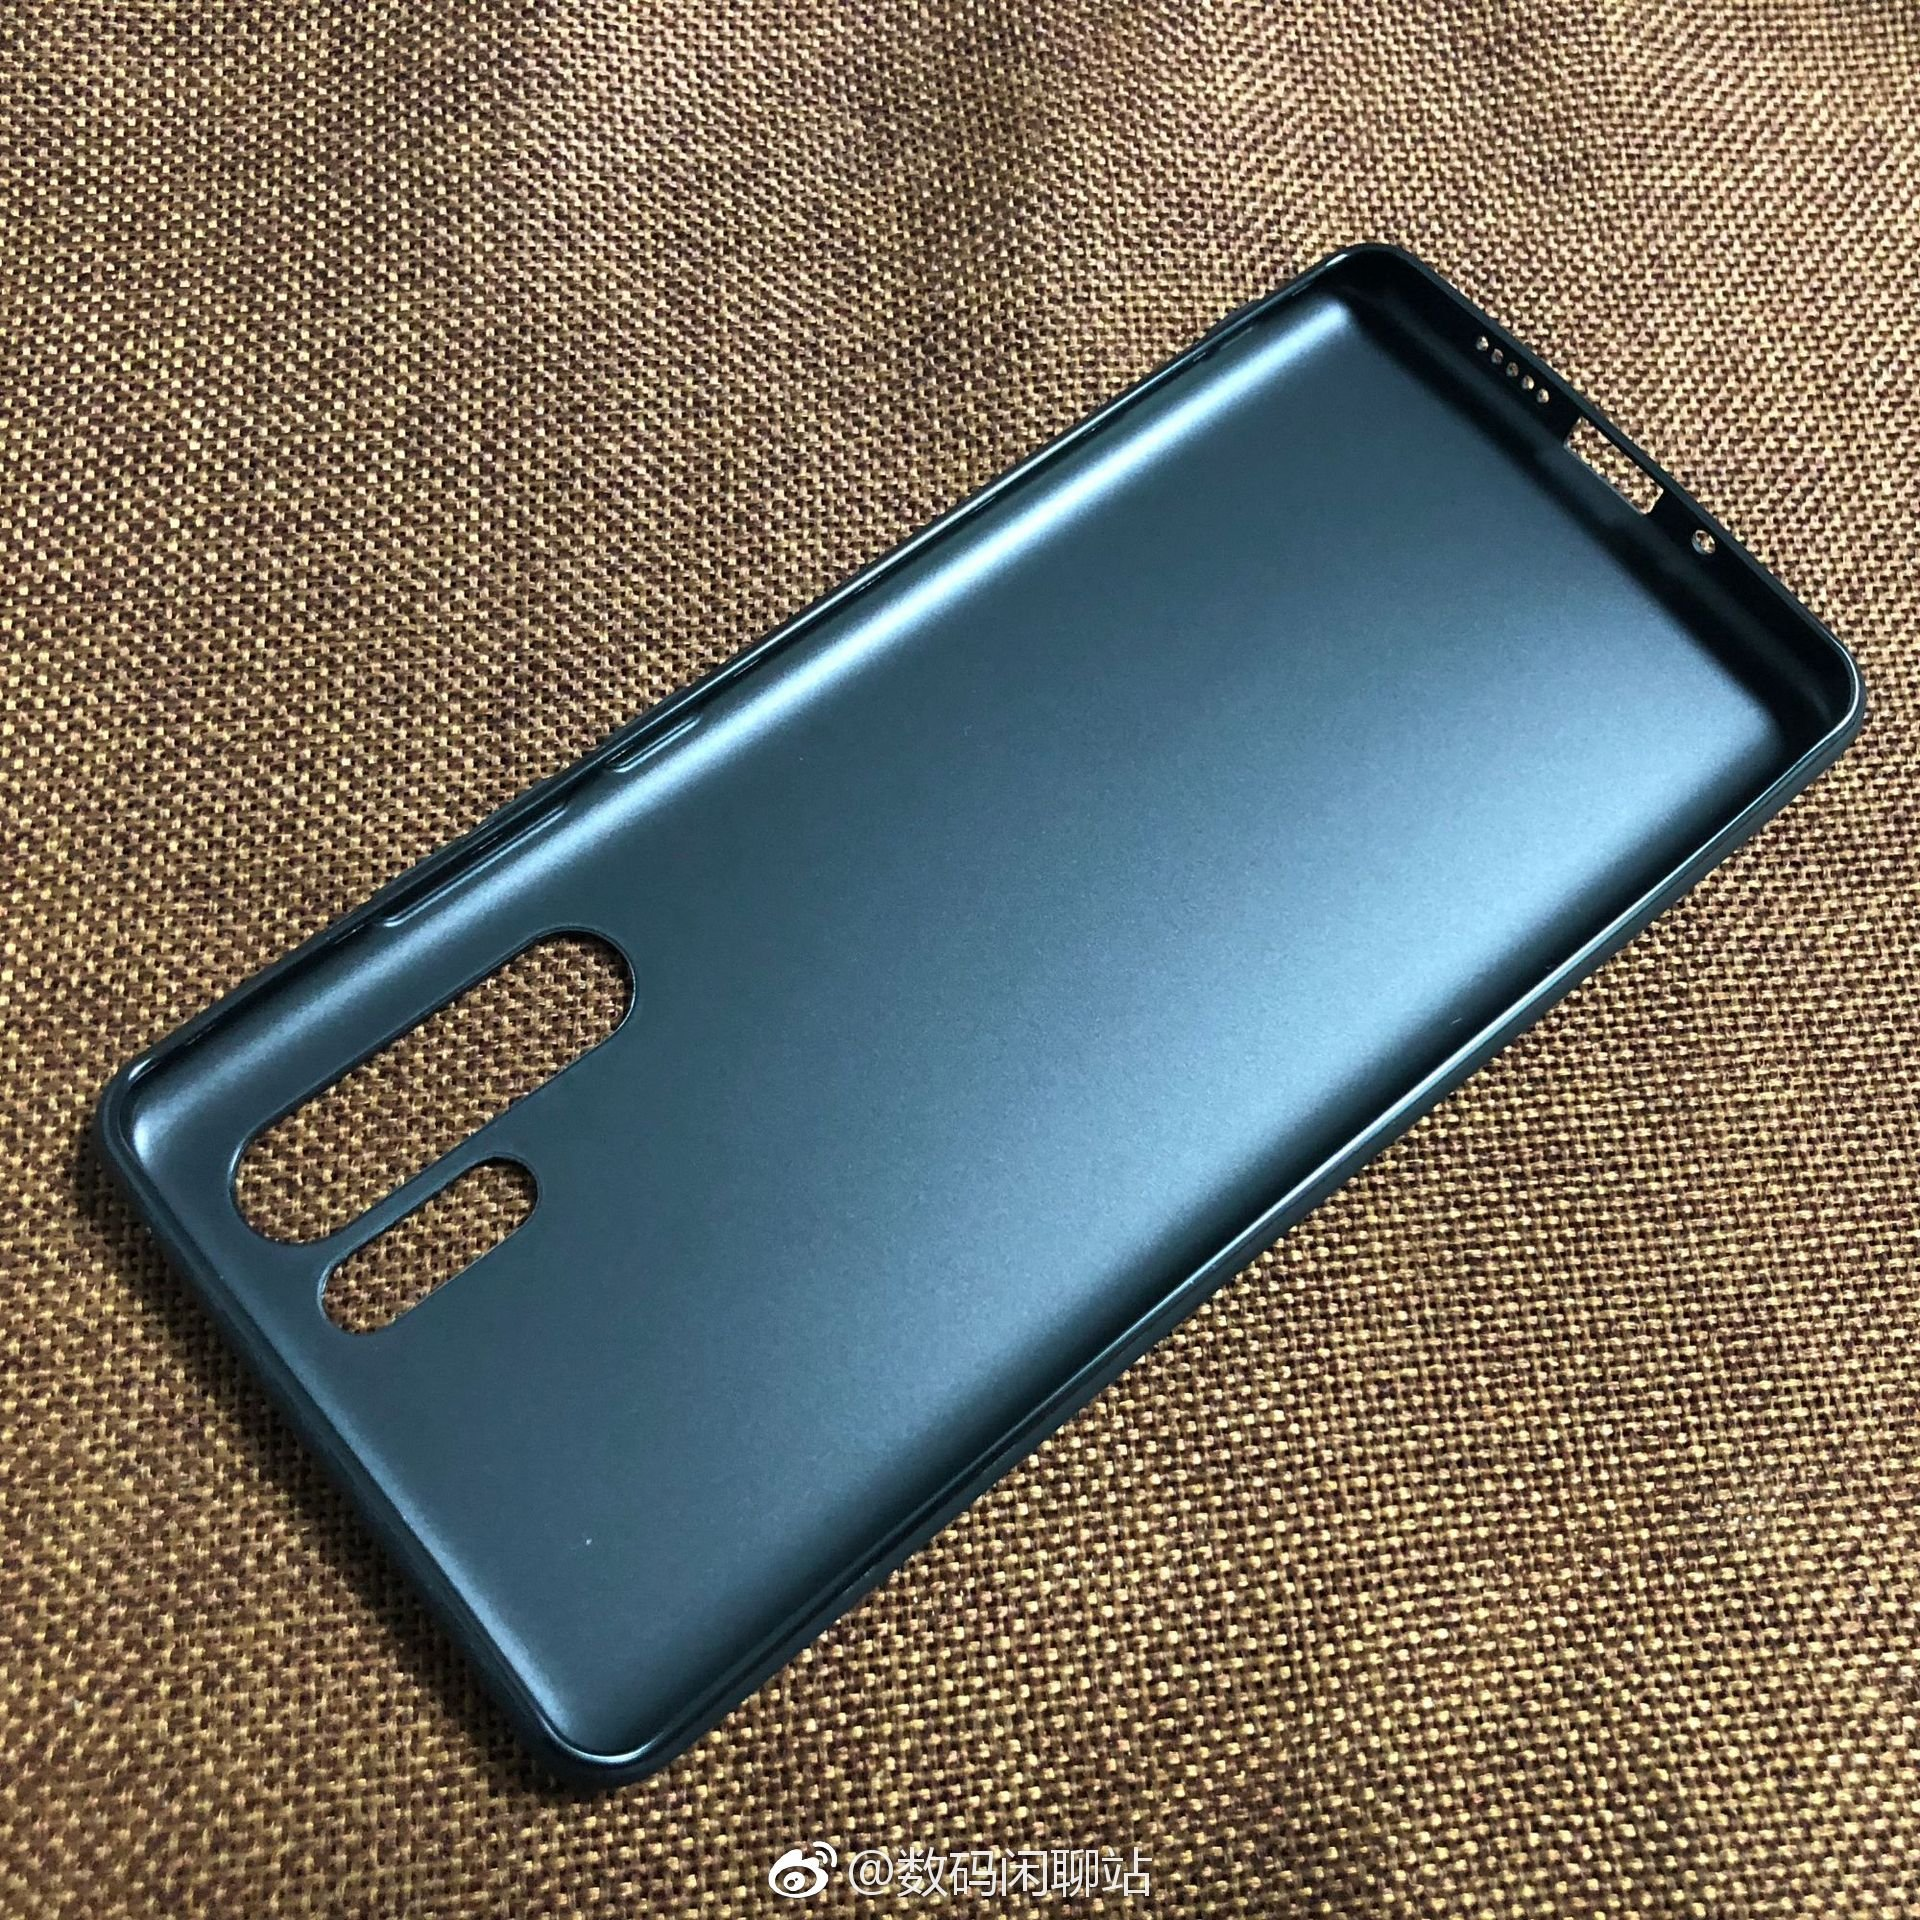 Sony IMX607 Specifications and Huawei P30 Pro Exposure 4